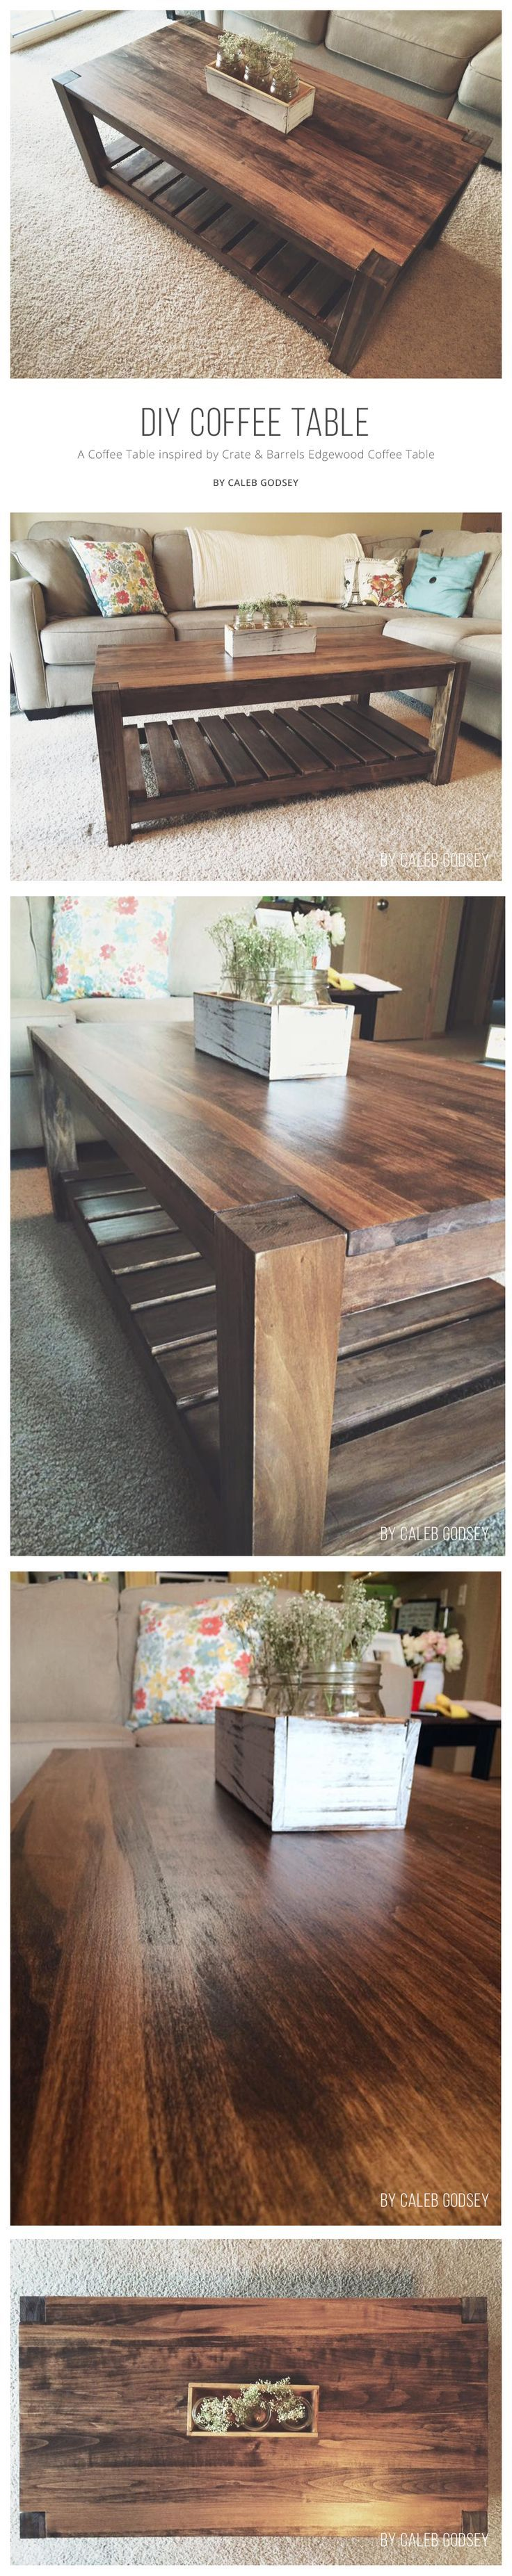 ae4a8e0d32a6409f9e8232b9105d35e9  no coffee table living room diy pallet coffee table Top Result 50 Unique Expandable Coffee Table